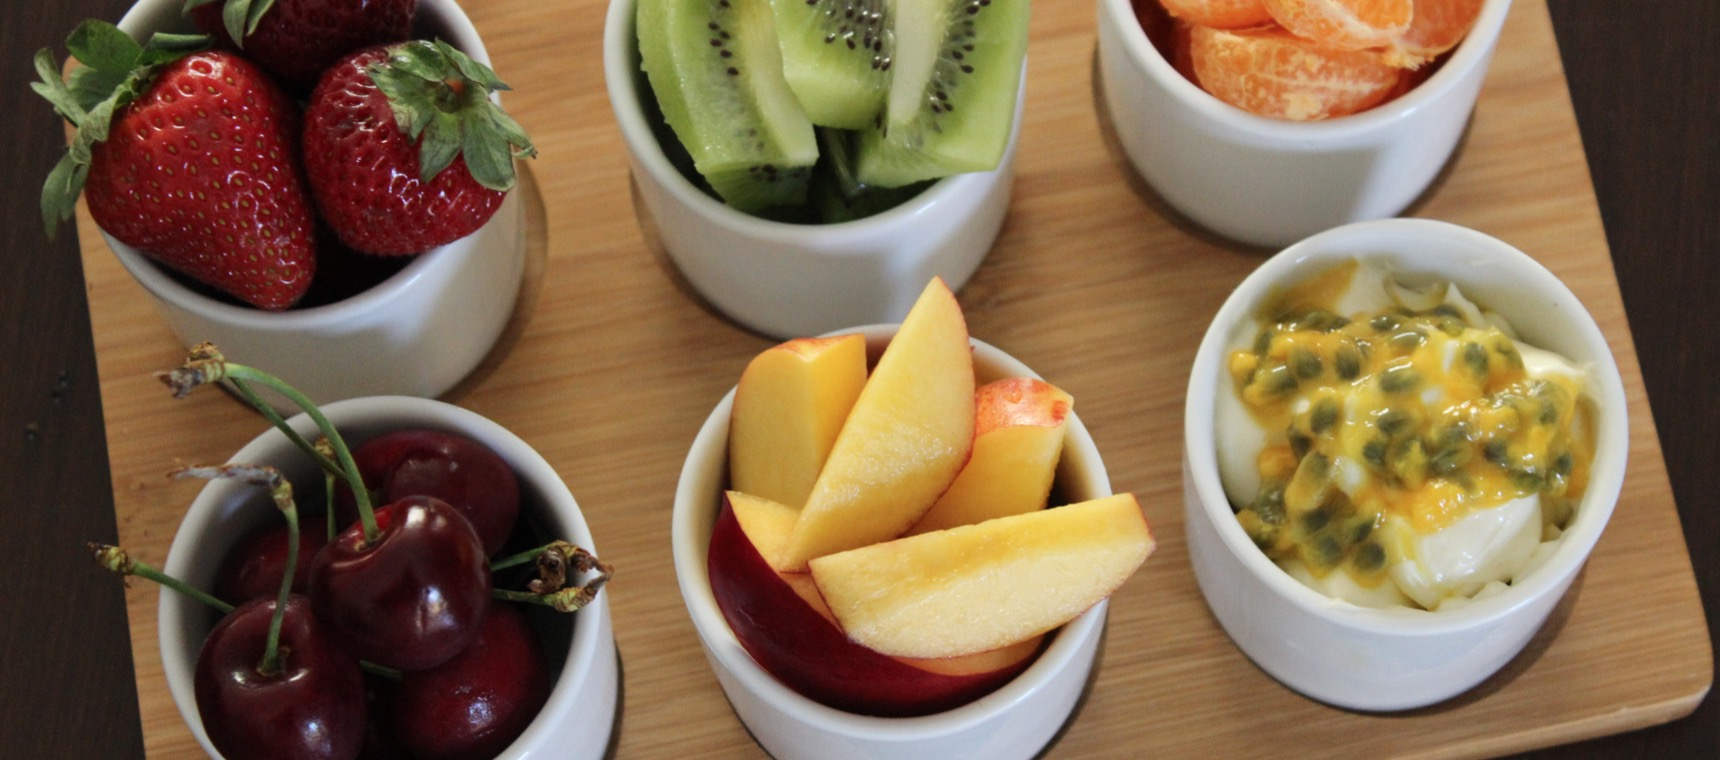 Breakfast Fruit Platter with Tropical Dip